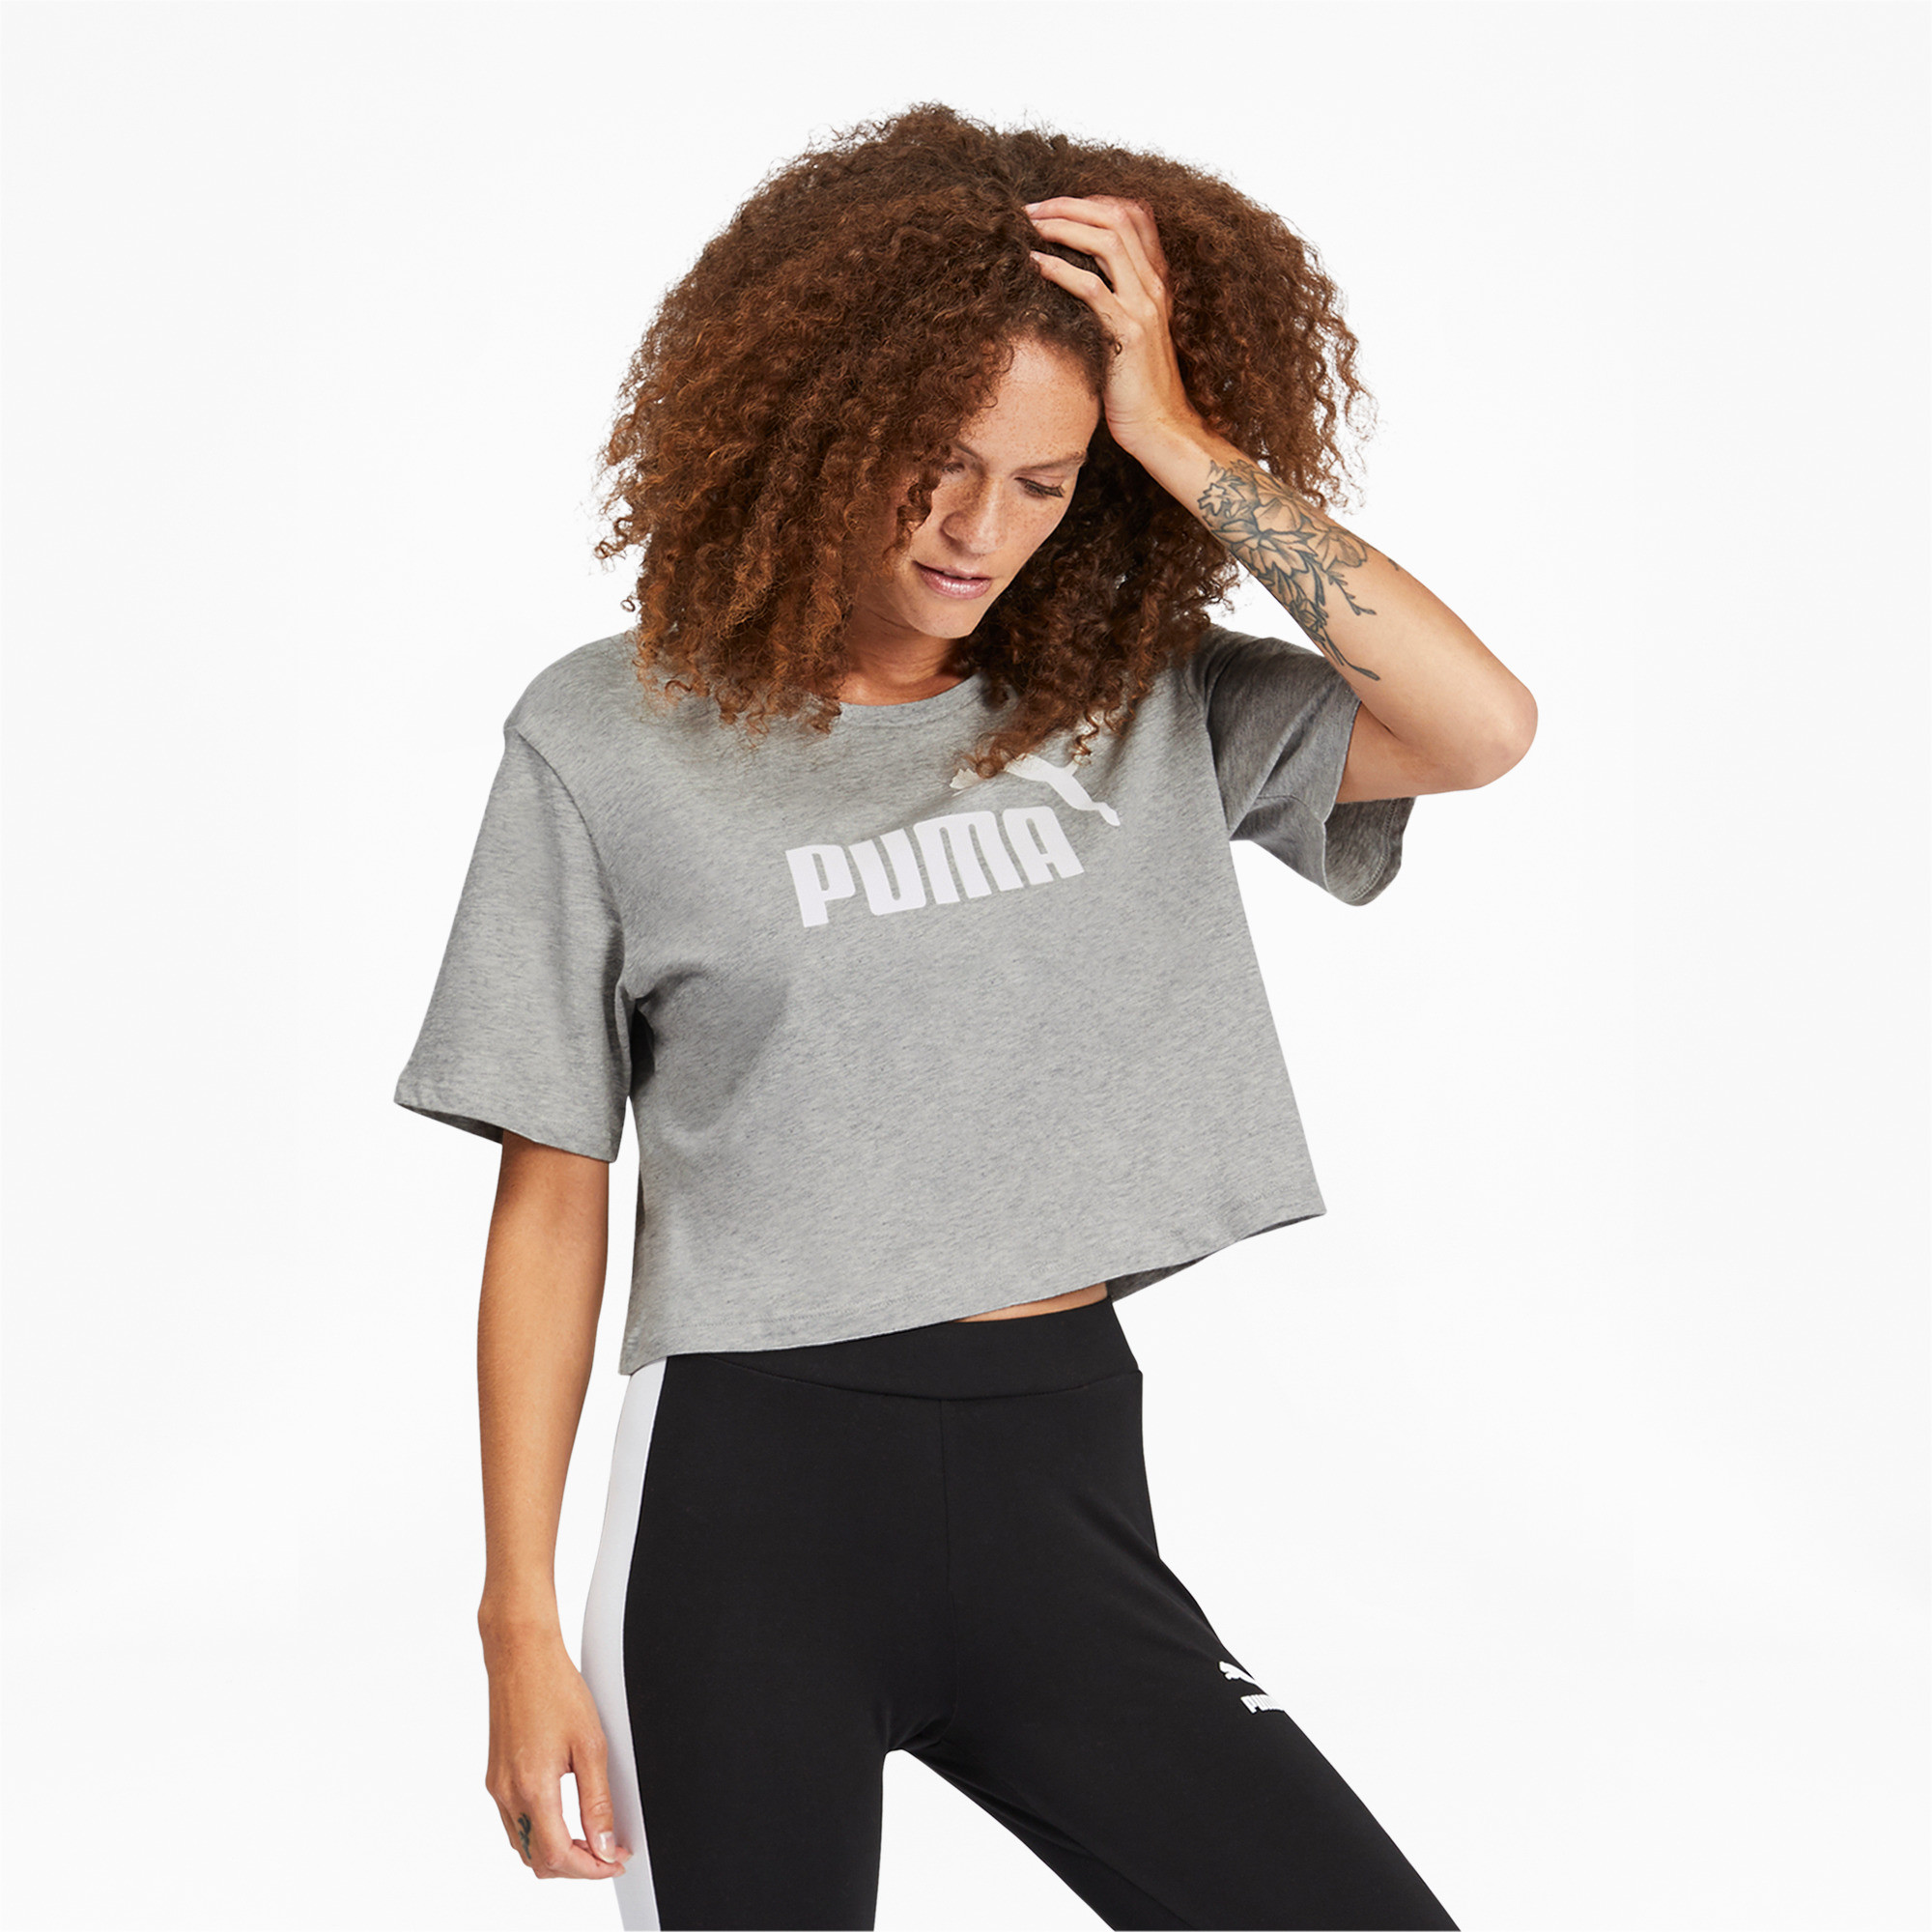 PUMA-Women-039-s-Cropped-Logo-Tee-Women-Crop-Top-Basics thumbnail 5